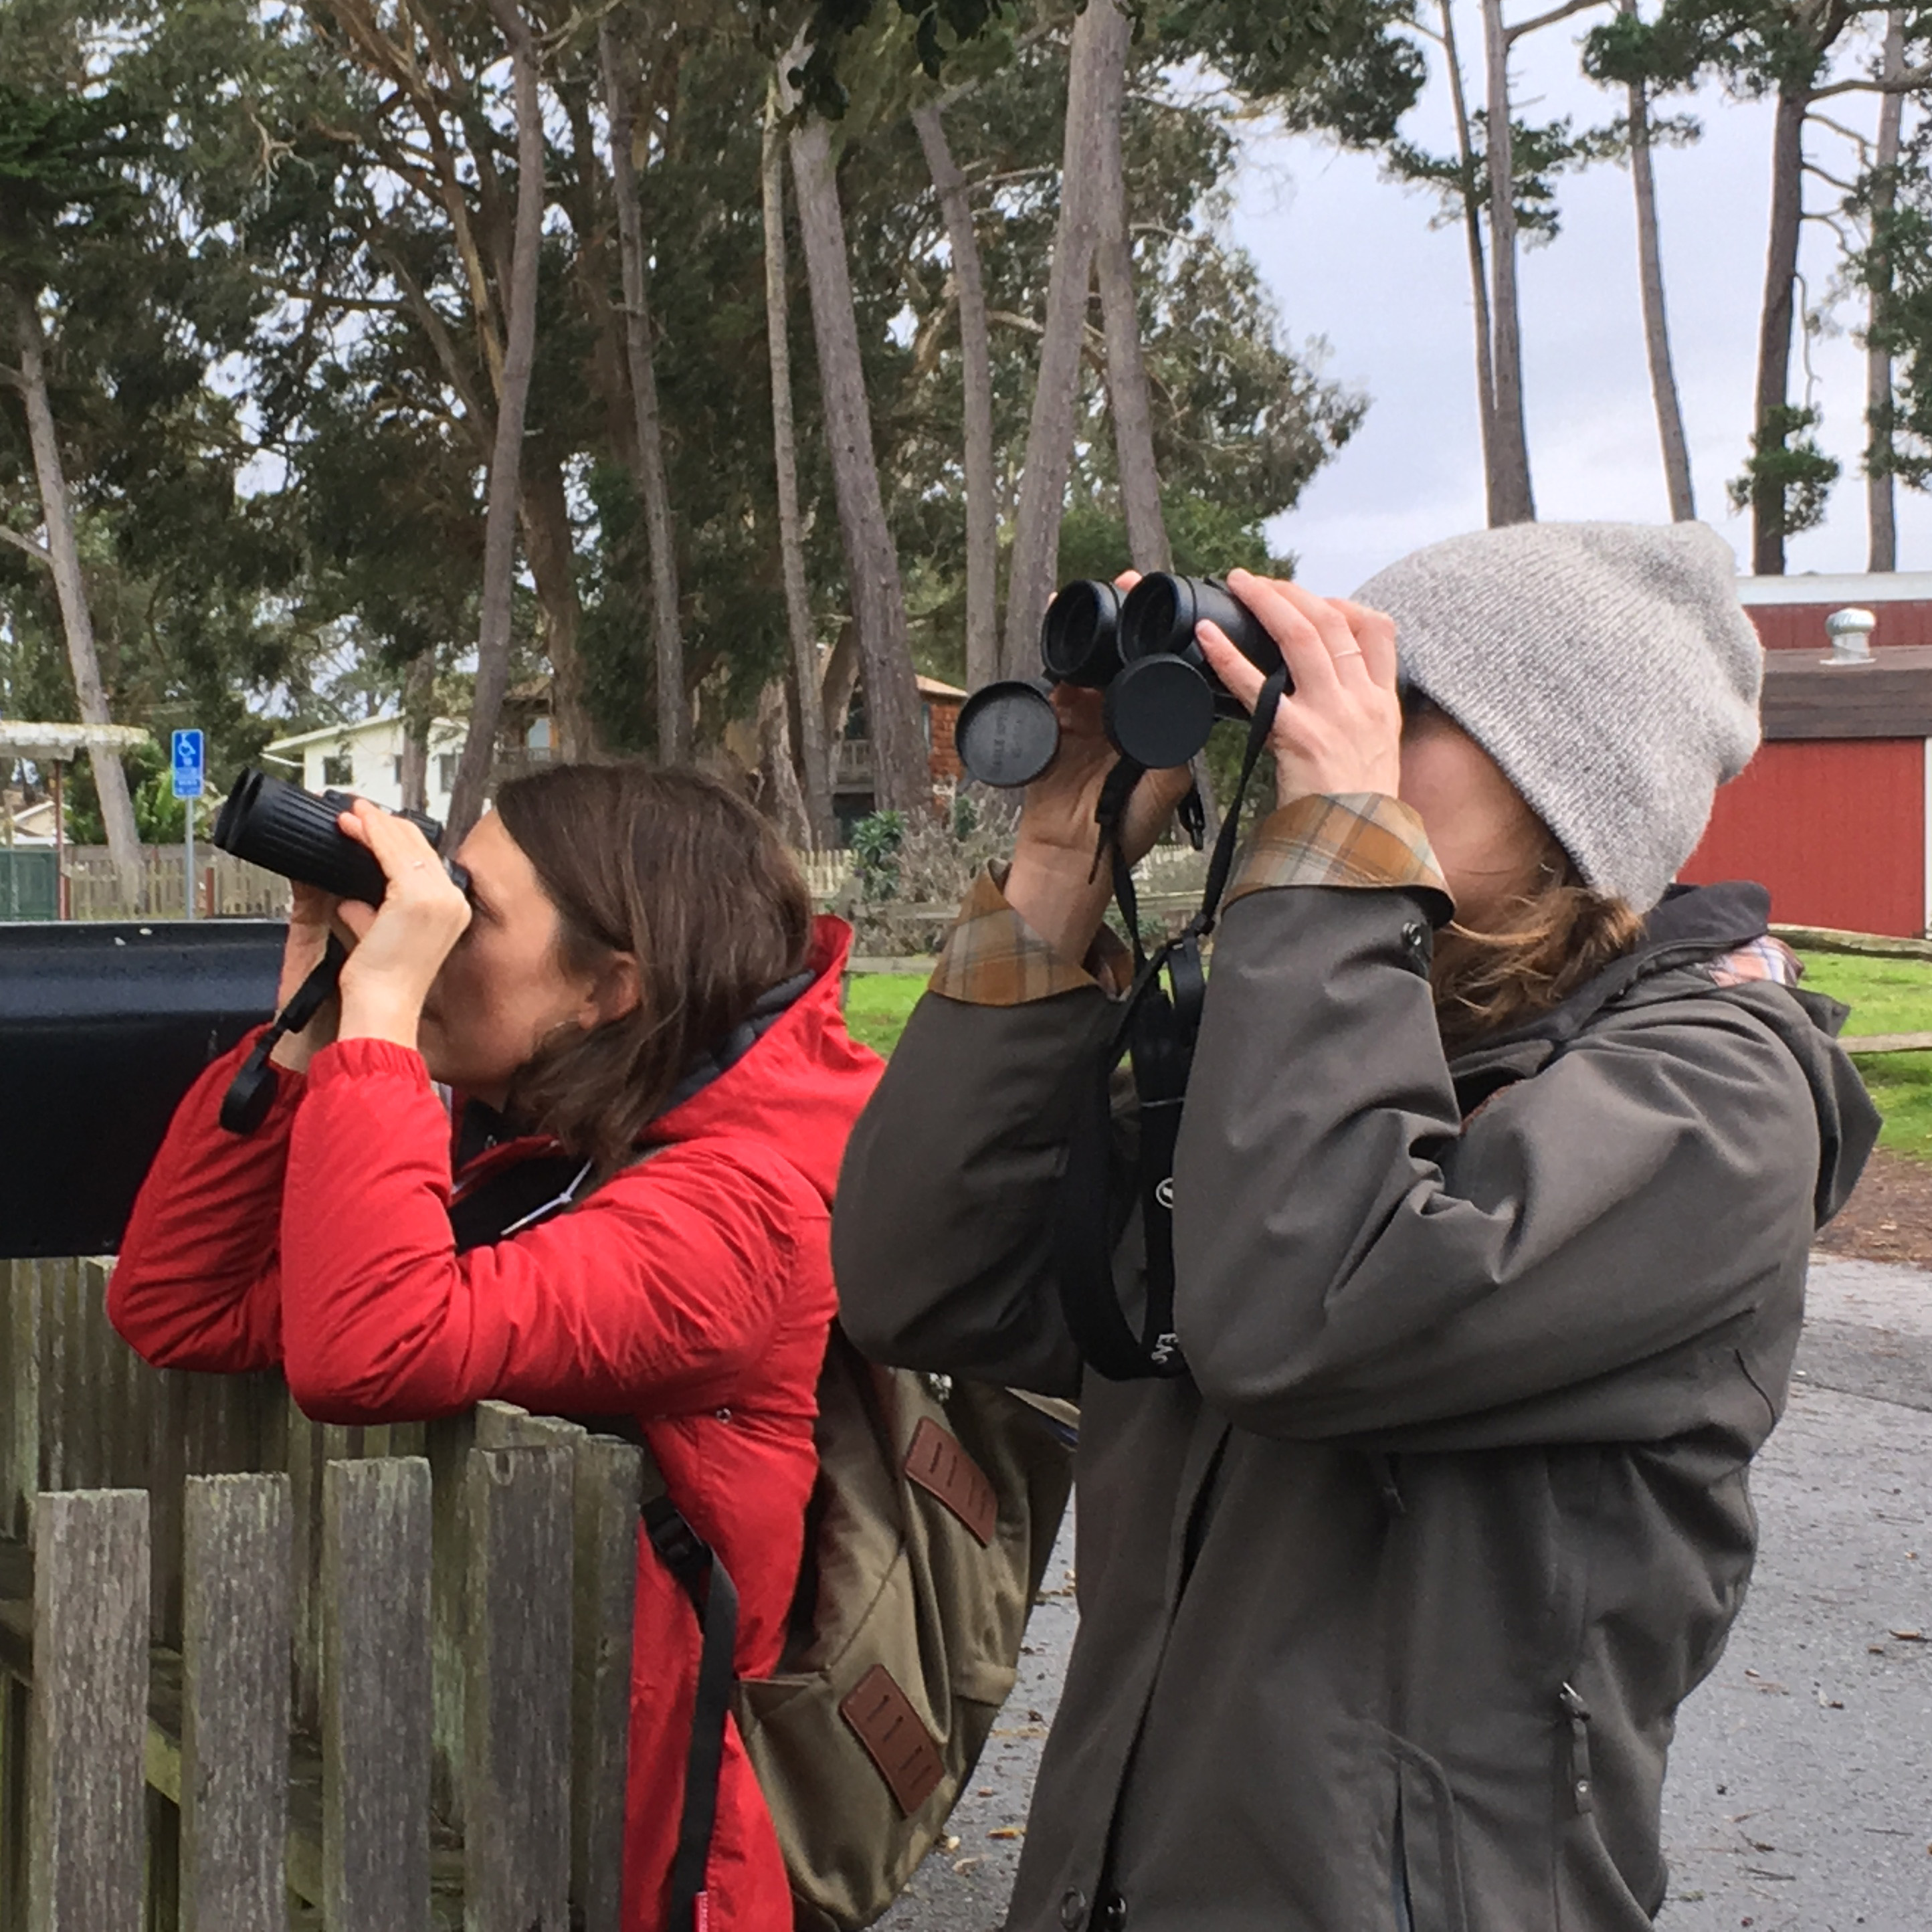 Two women wearing coats, one with a knit hat, are looking through binoculars at monarchs (outside the frame).